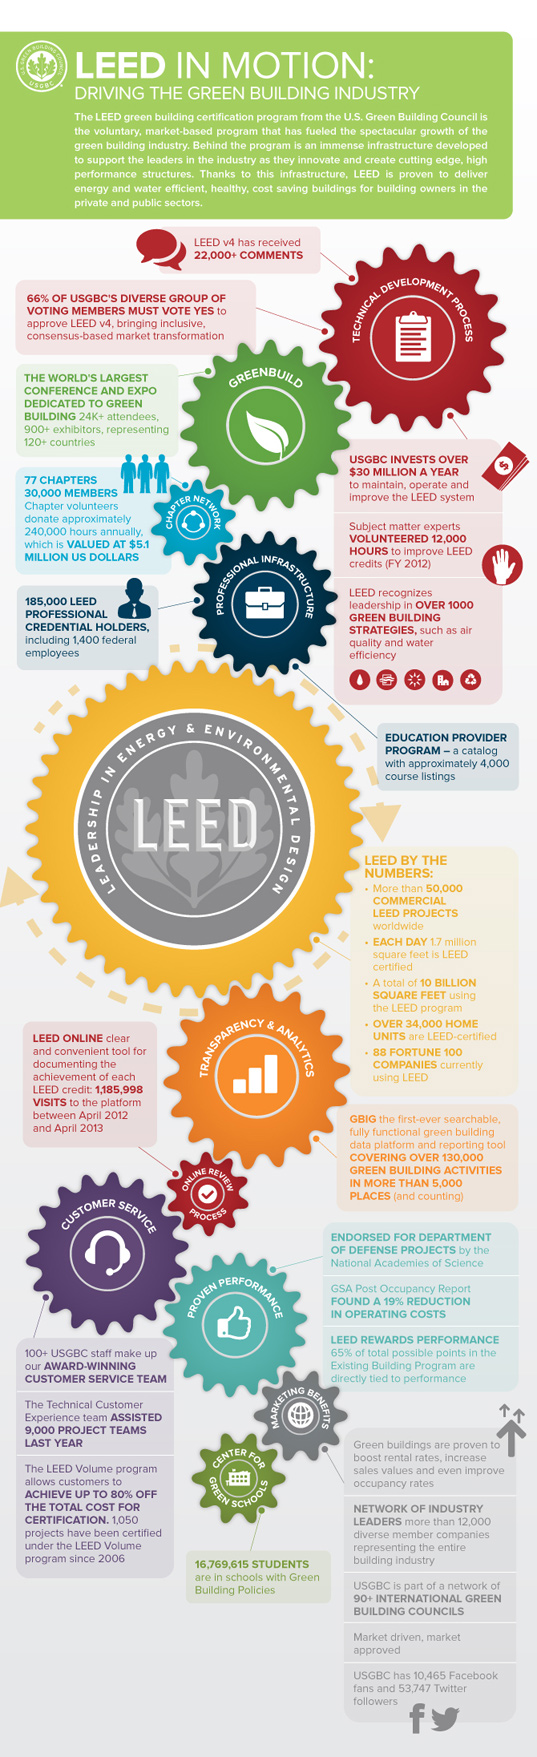 leed-in-motion-infographic-2.jpg